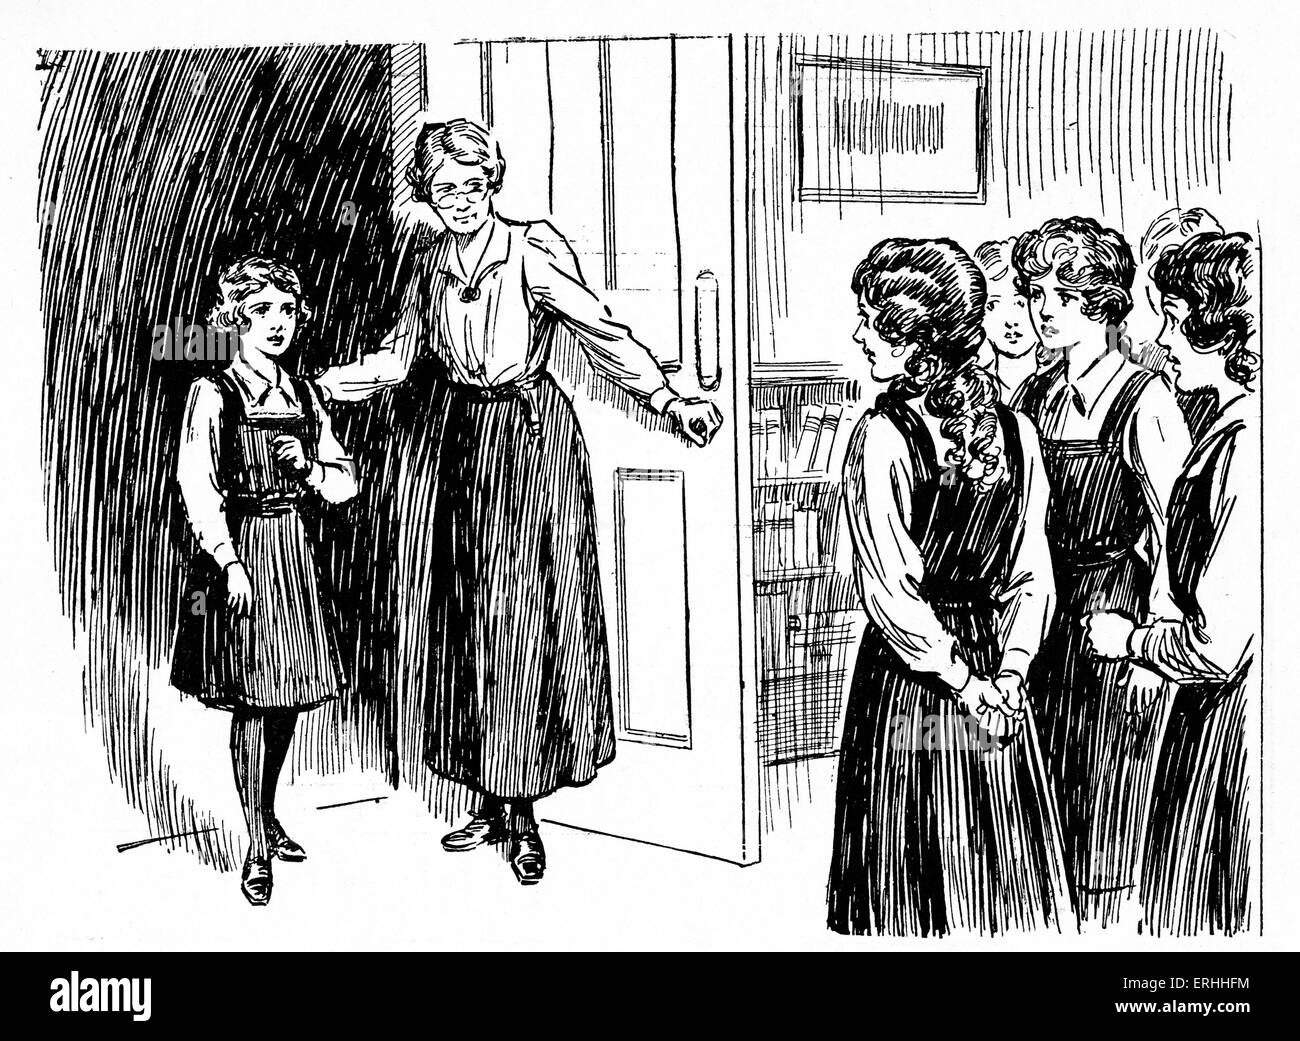 Schoolgirls' story from 1923 - The Mistress introduces a new girl to her classmates in 'The Girl Named Smith: - Stock Image